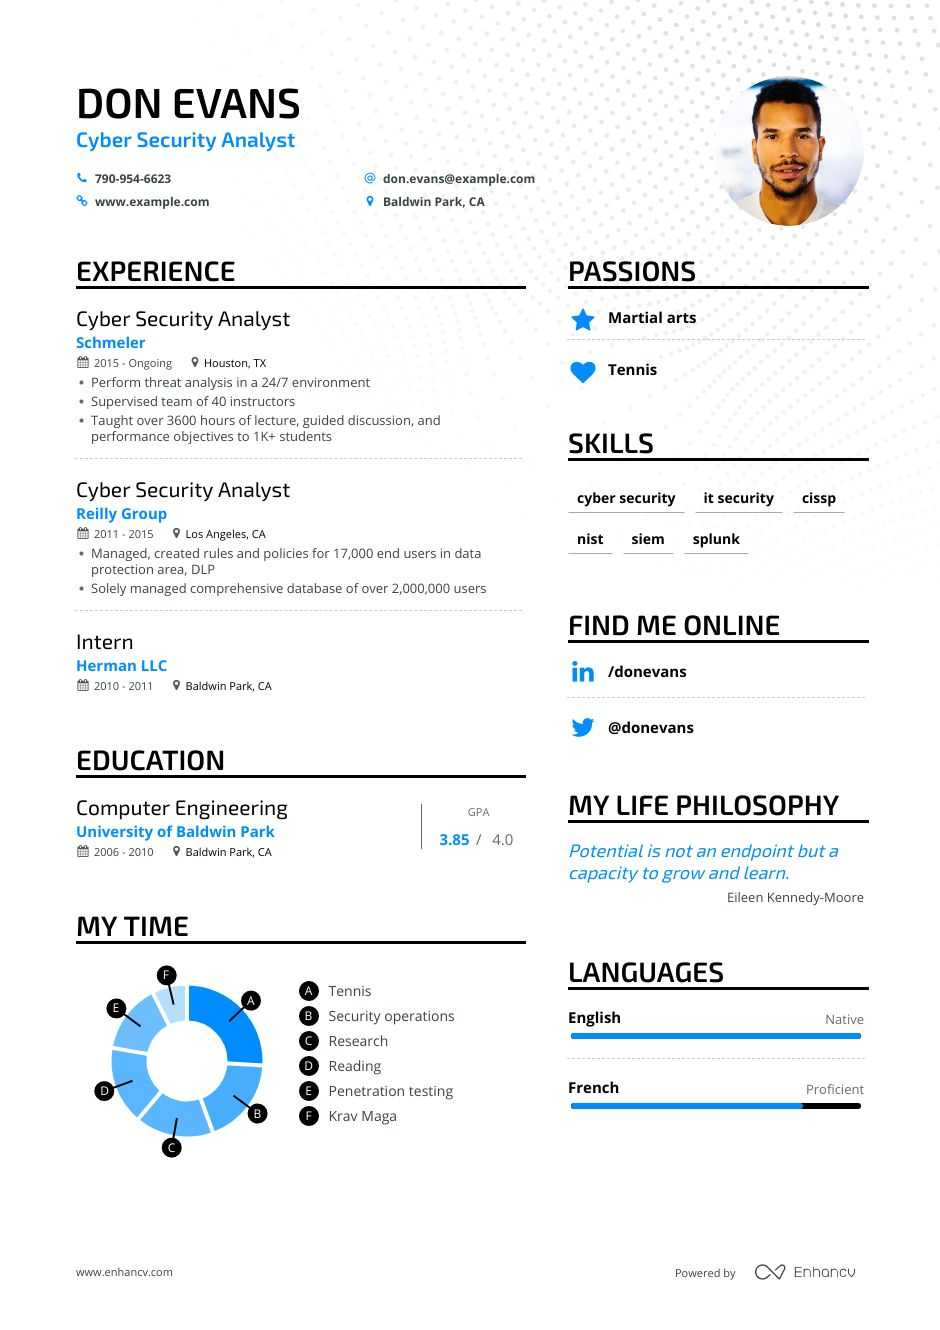 cyber security analyst resume examples guide pro tips enhancv junior free professional Resume Junior Cyber Security Analyst Resume